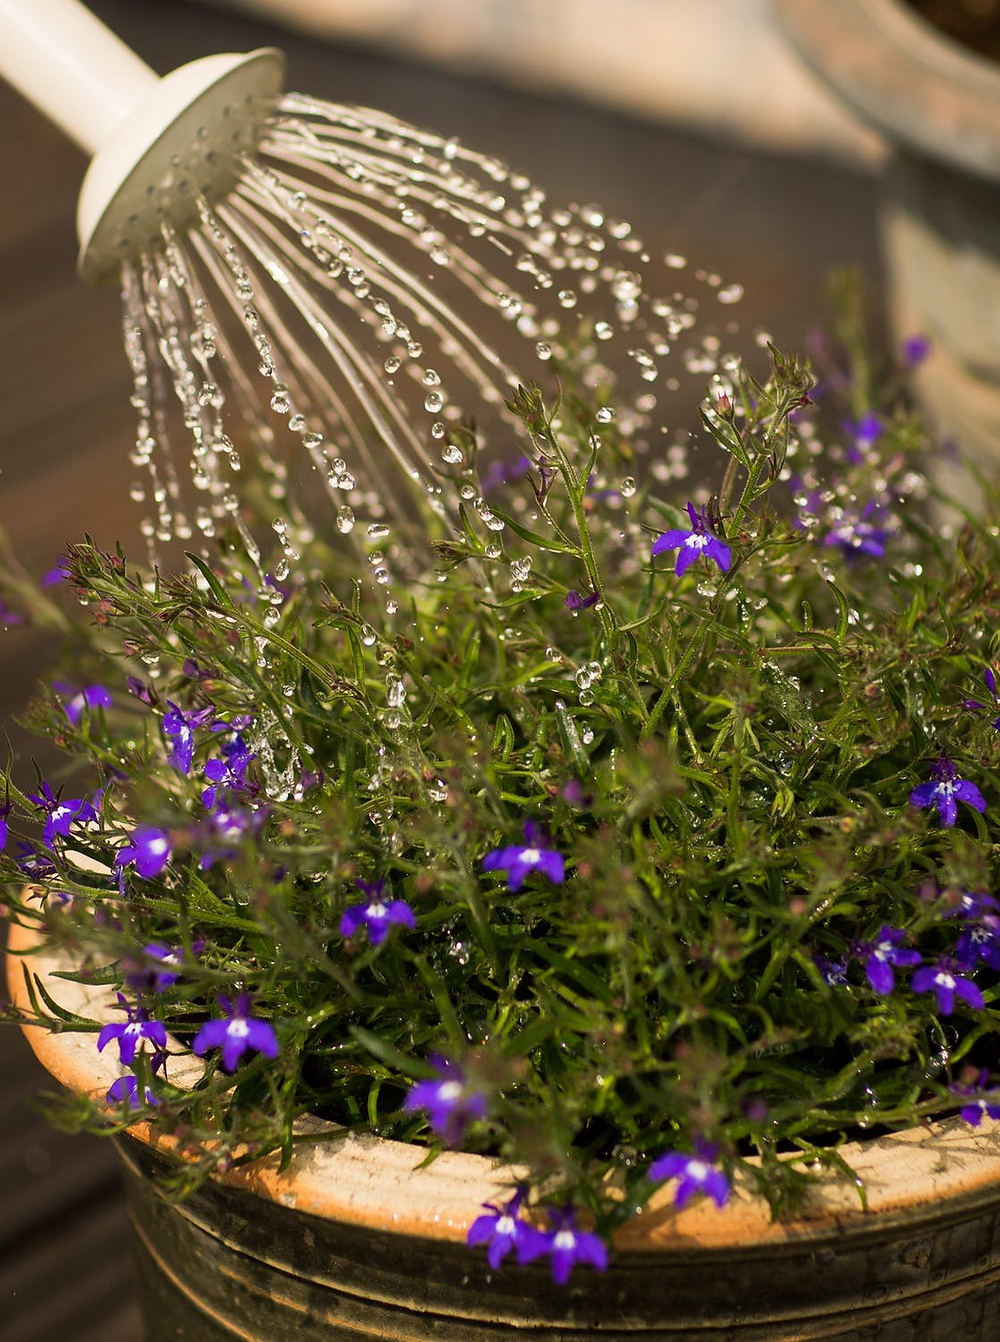 picture of some flowers being watered.